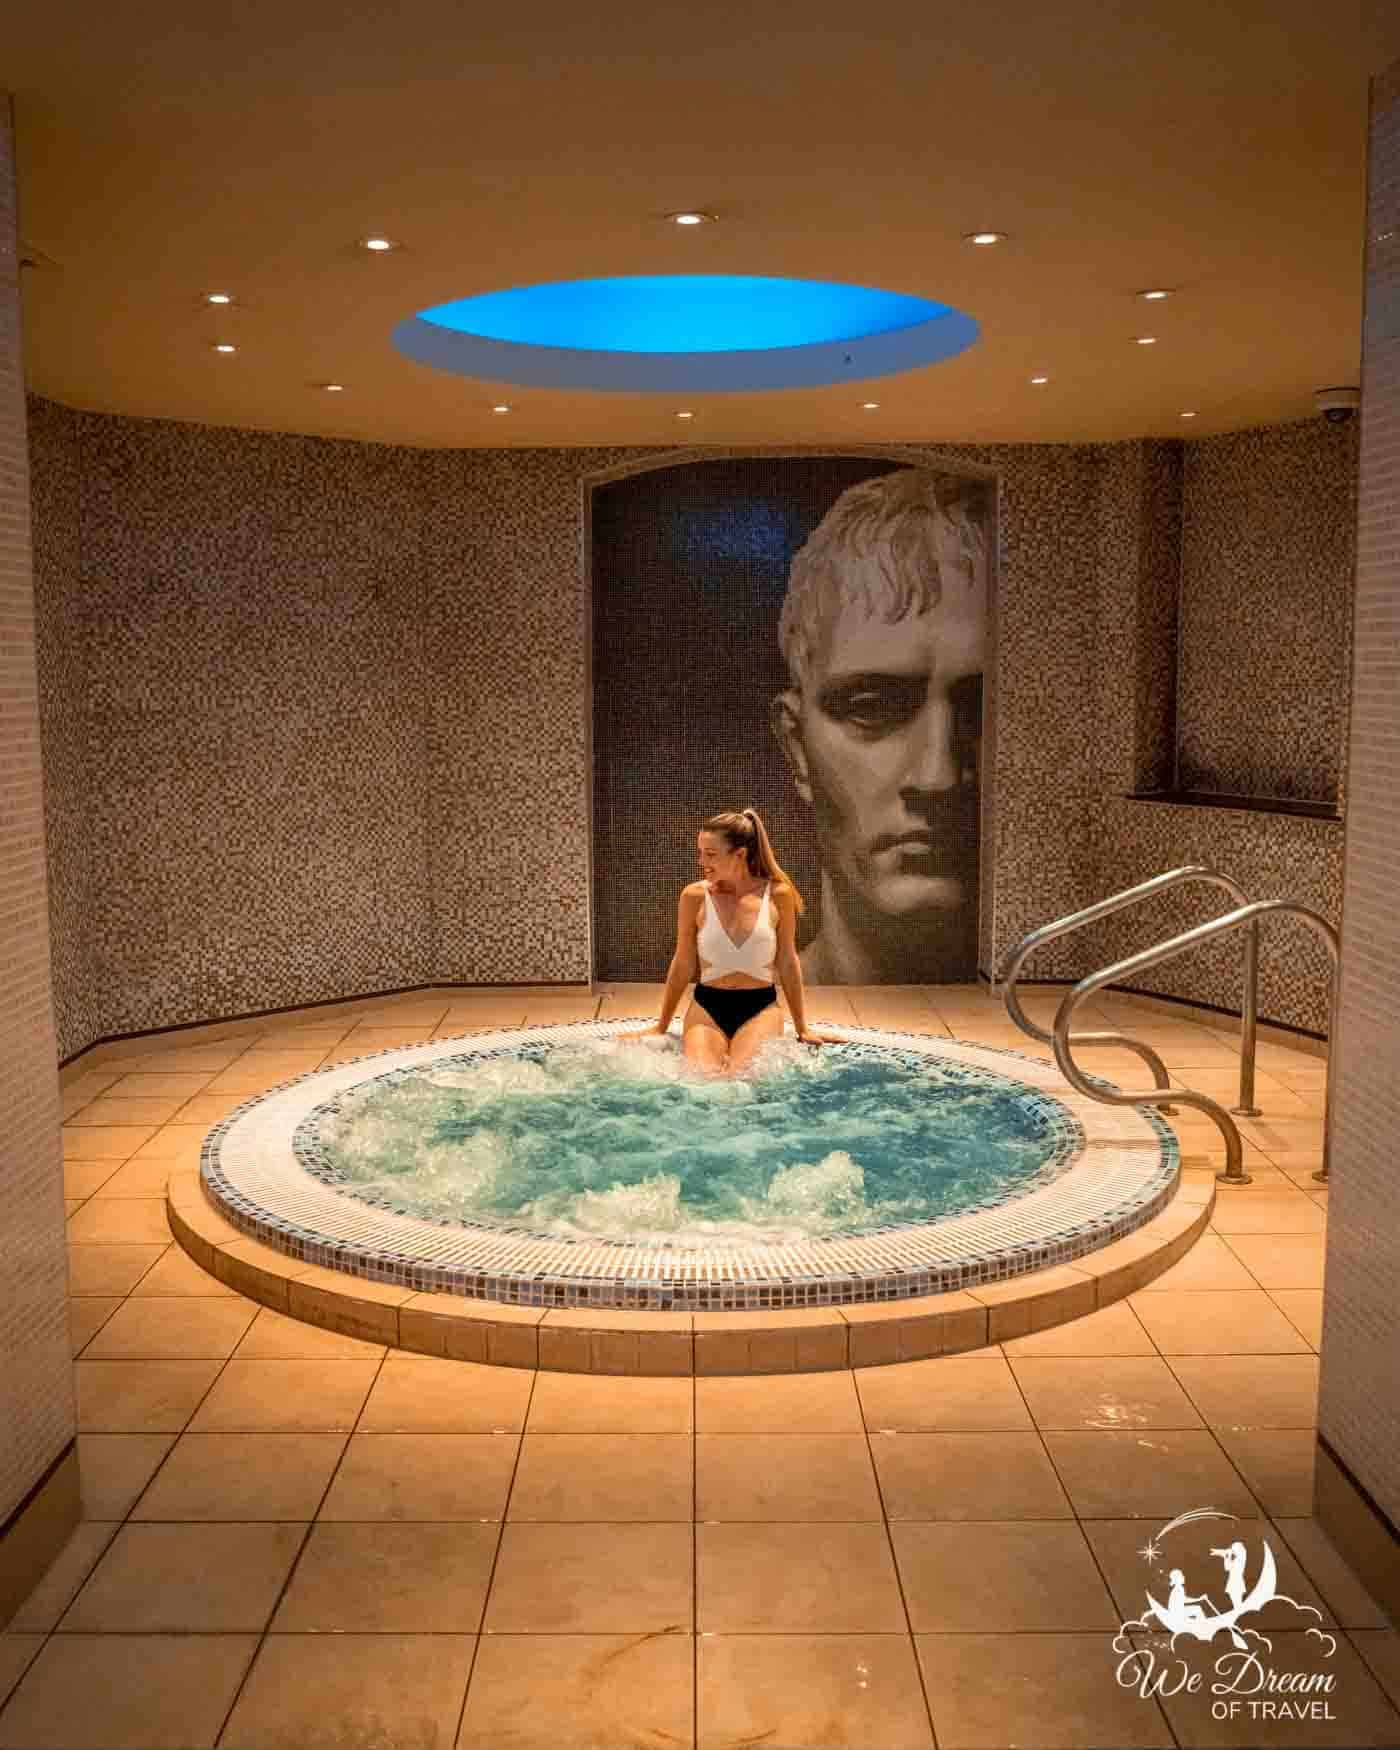 Enjoying the hot tub at The Grand hotel in York